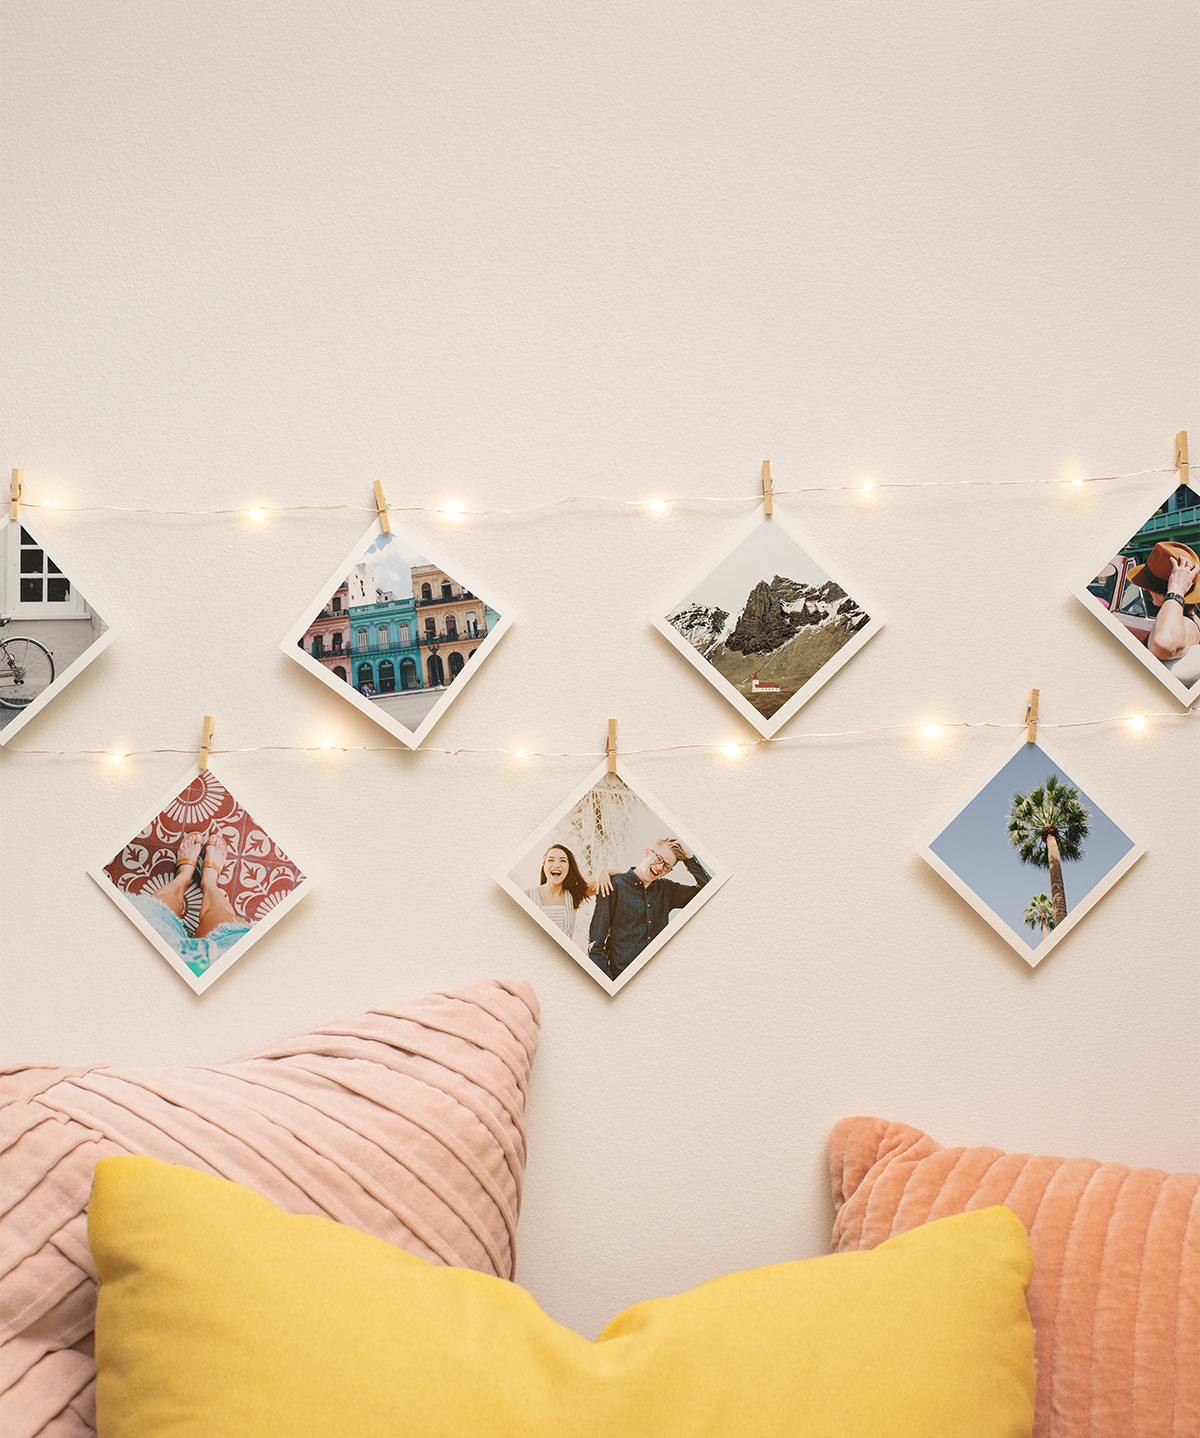 Photo prints hanging from string lights on wall